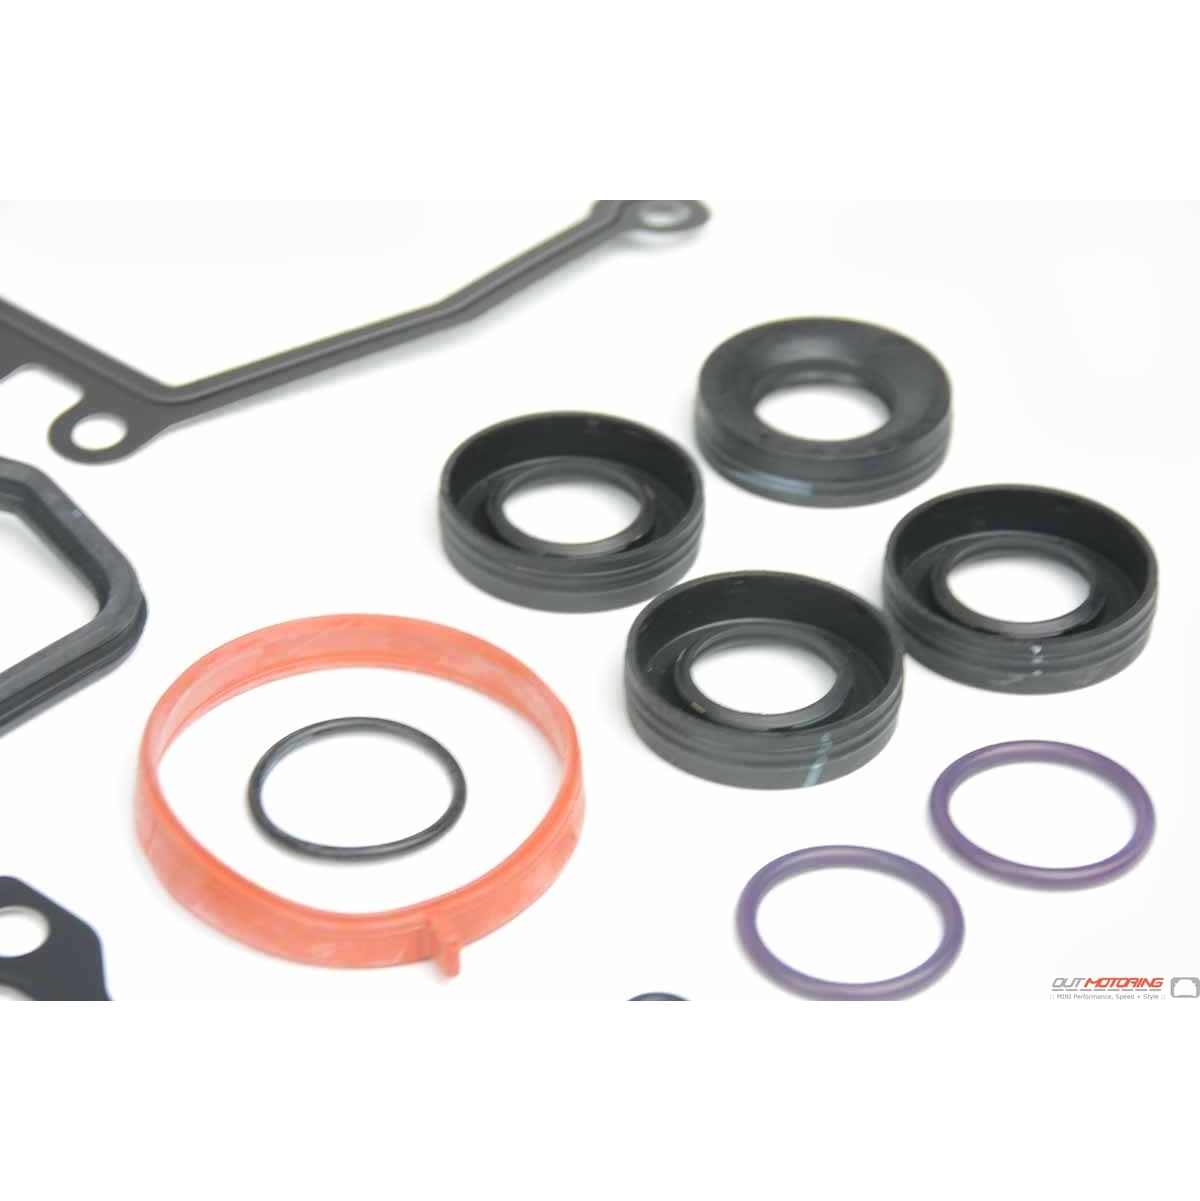 2015 Mini Roadster Head Gasket: MINI Cooper Replacement Head Gasket Kit Valve Cover Gasket